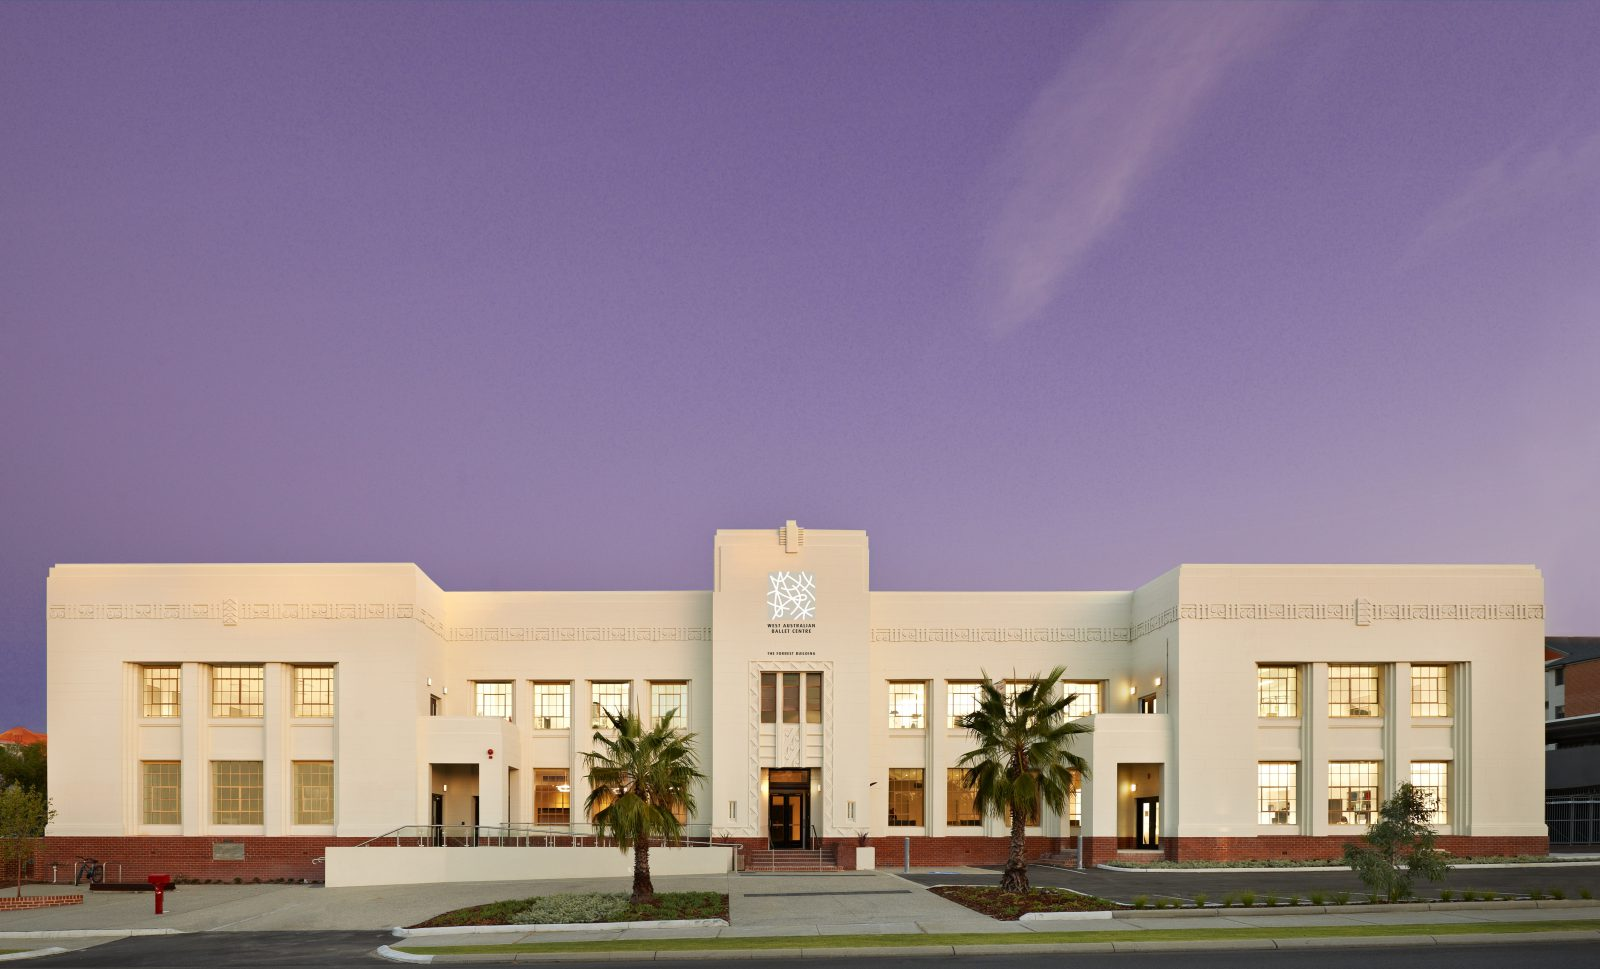 WA Ballet Centre Building / Maylands - WA Ballet group - 23rd March 2012